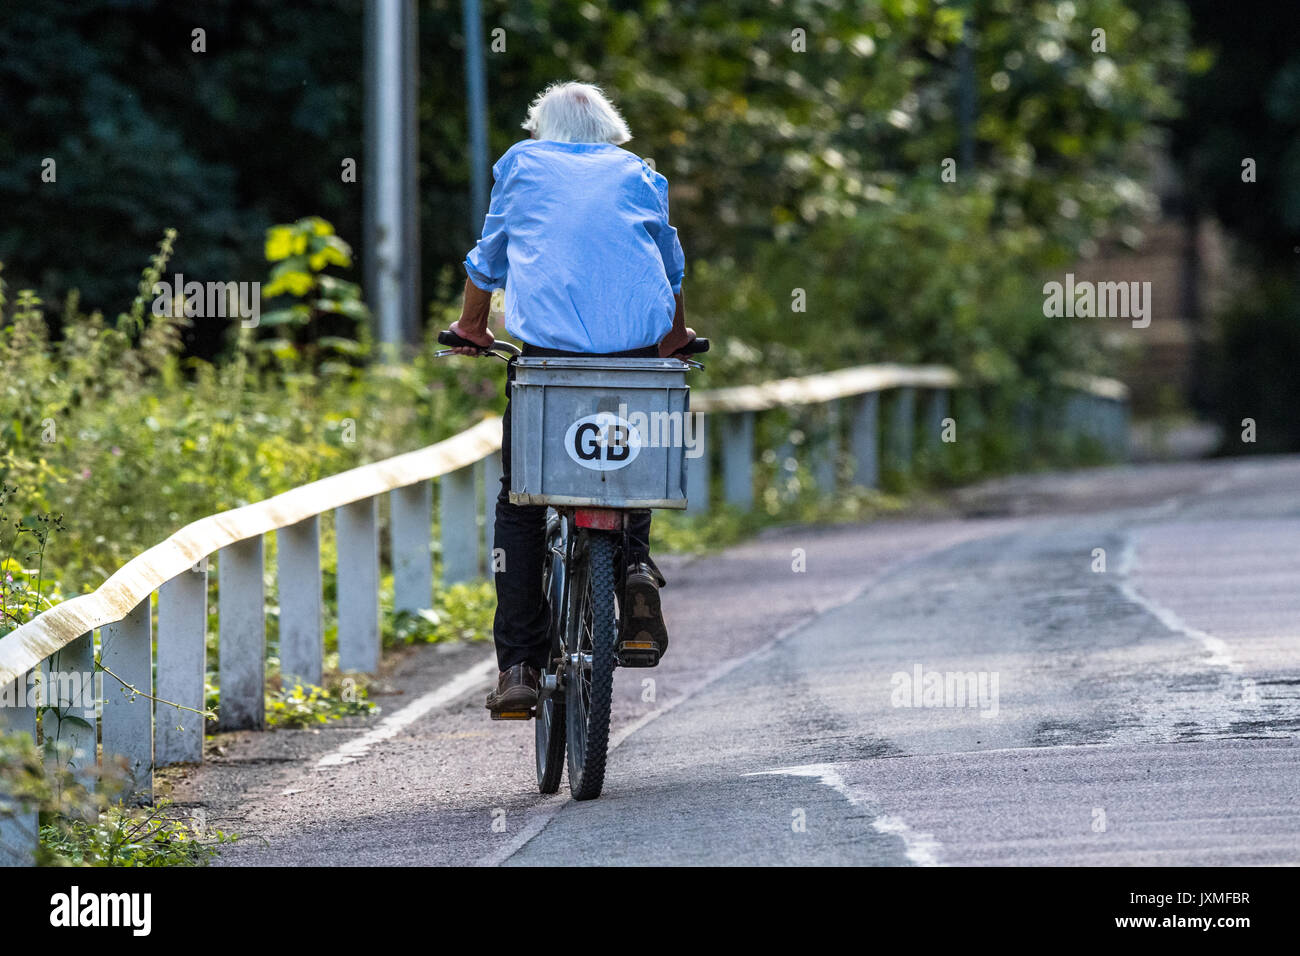 Male riding a bicycle on a country lane with G.B. sticker. - Stock Image